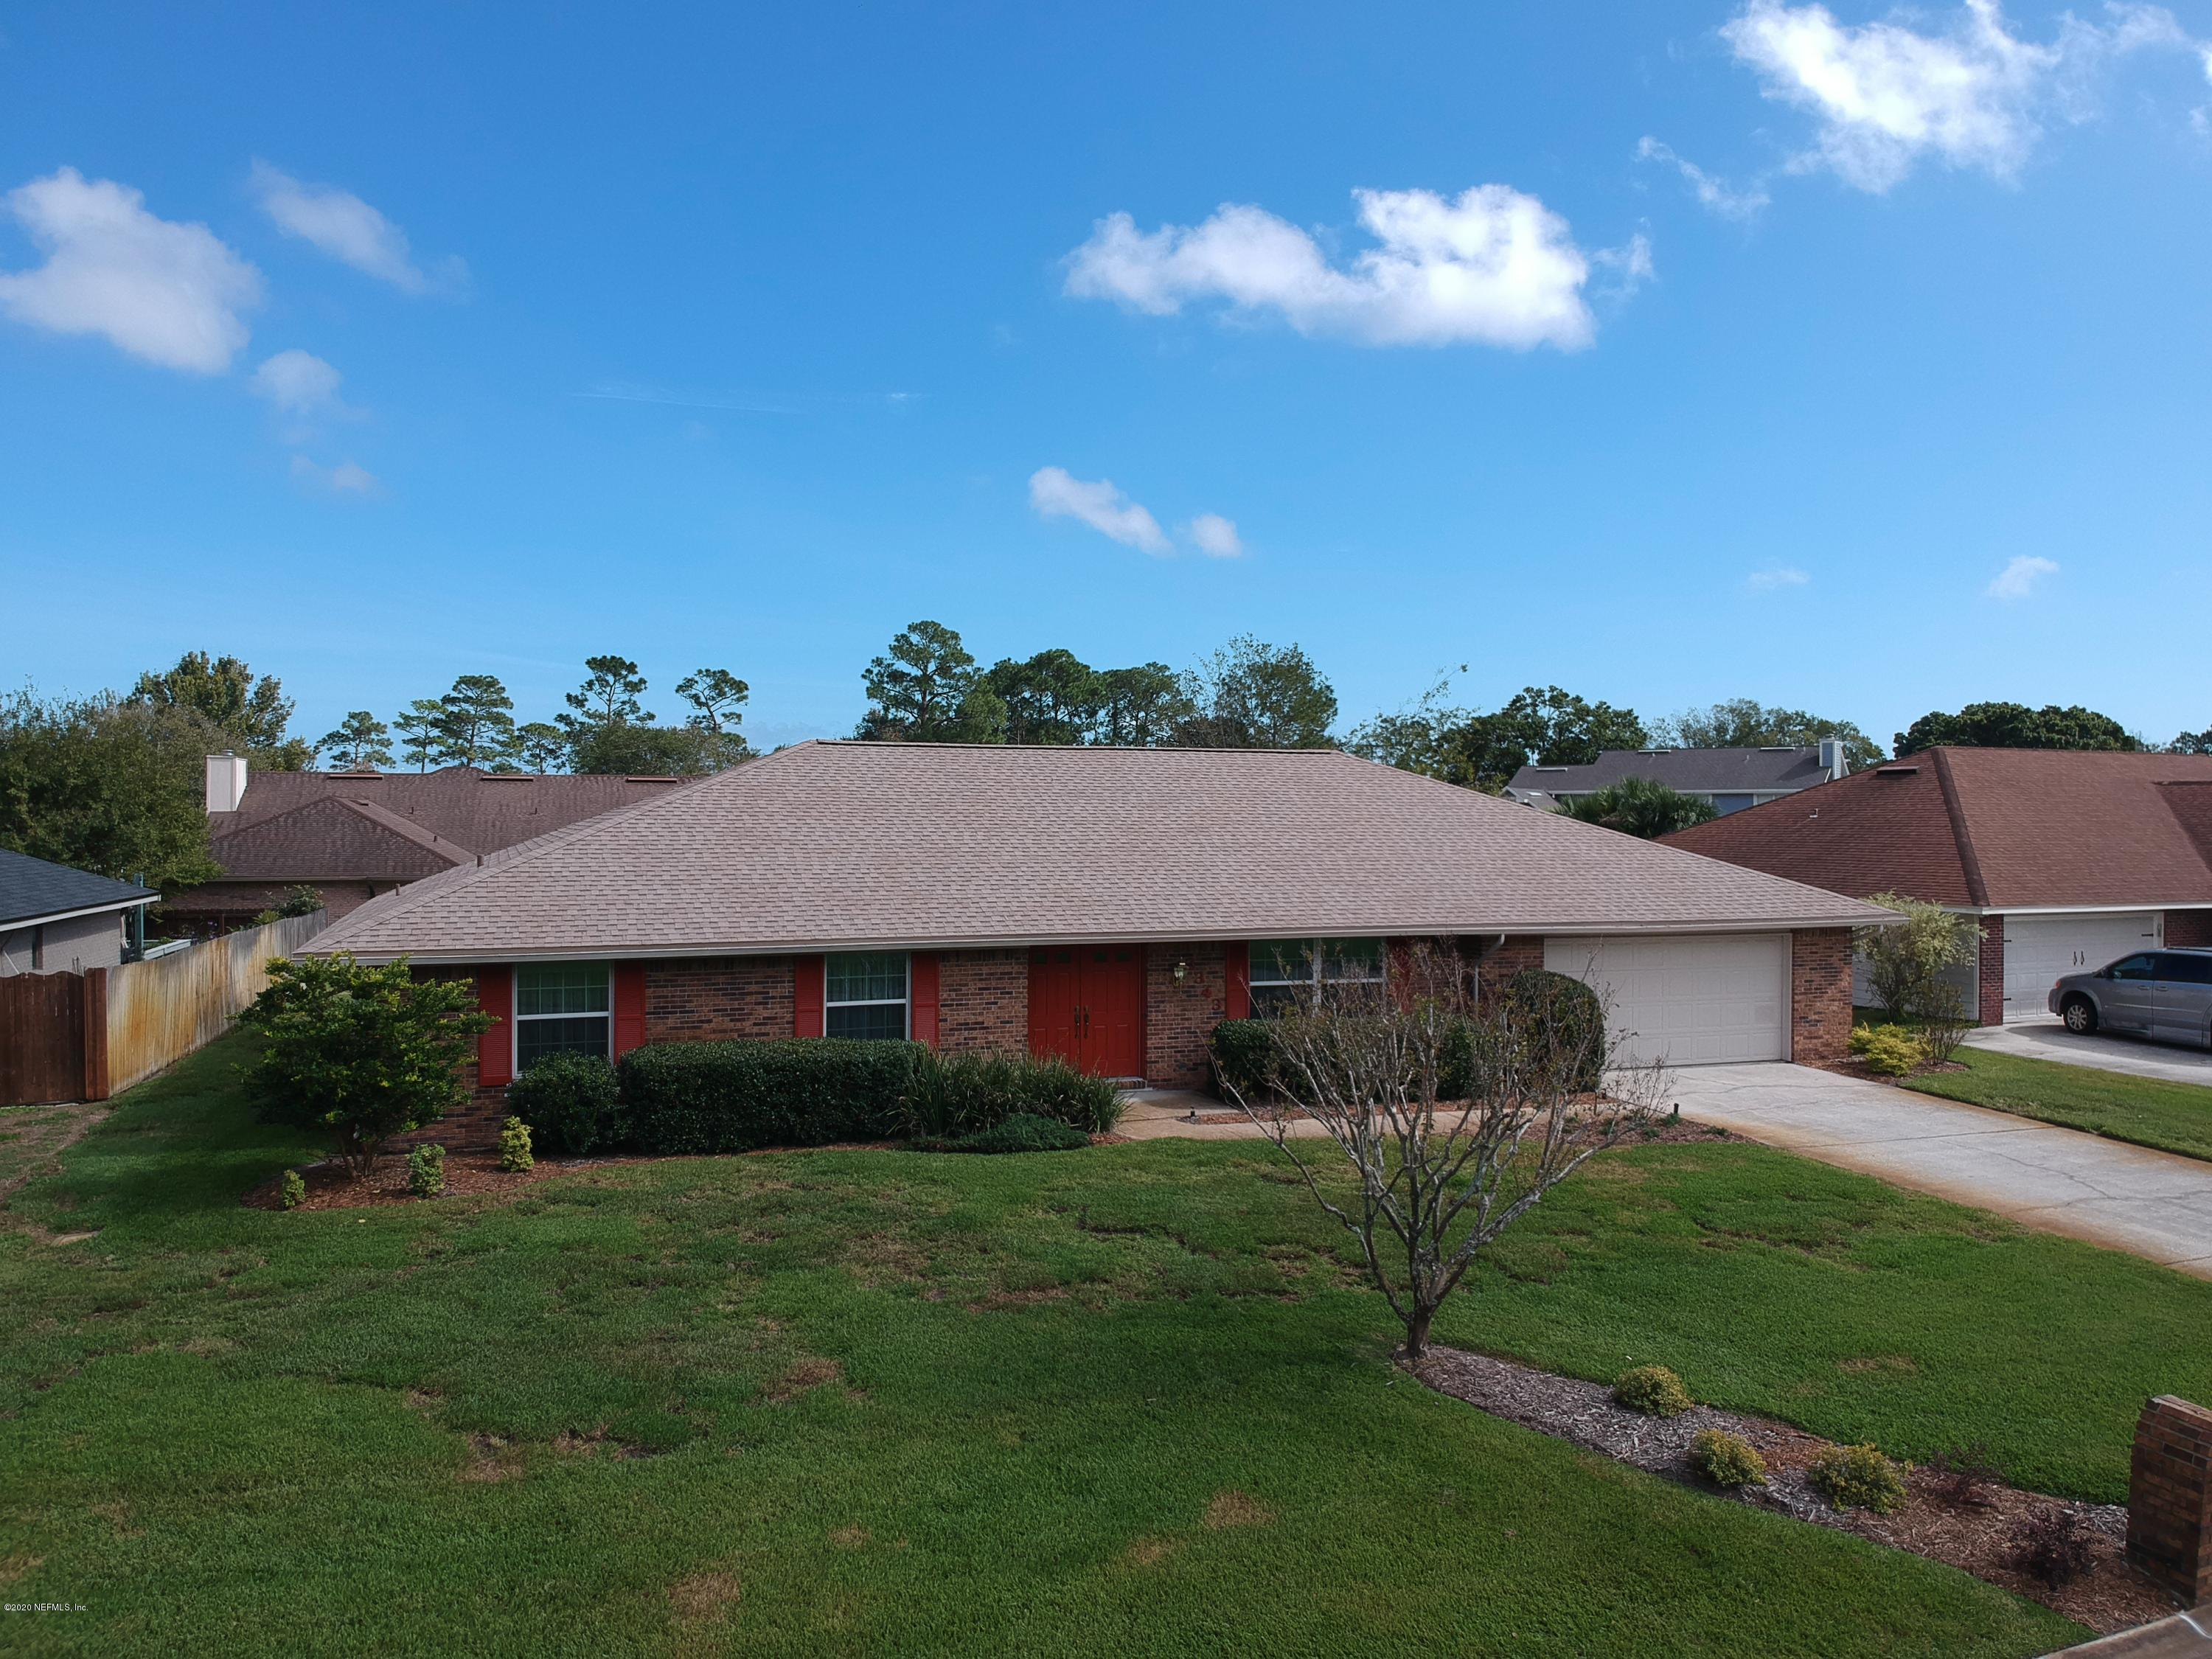 2343 The Woods Dr